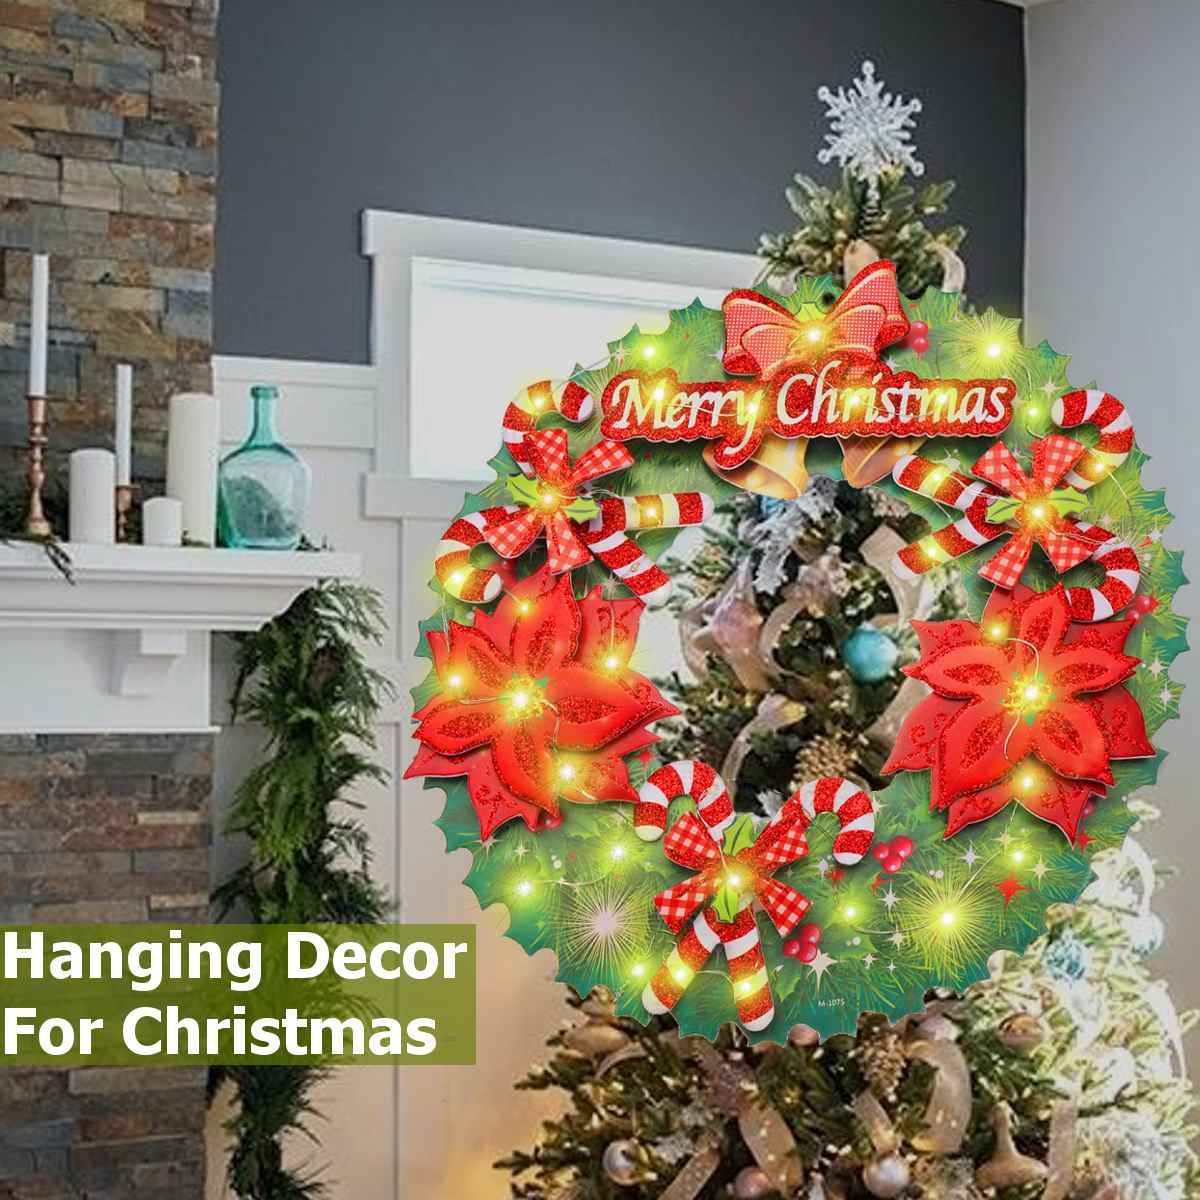 Christmas Board Design.Us 8 23 53 Off Warm Led Light Up Decor Wreath Paper Board Hanging Ornaments For Christmas Xmas Party Diy Layout On Flash Off Diameter 36cm In